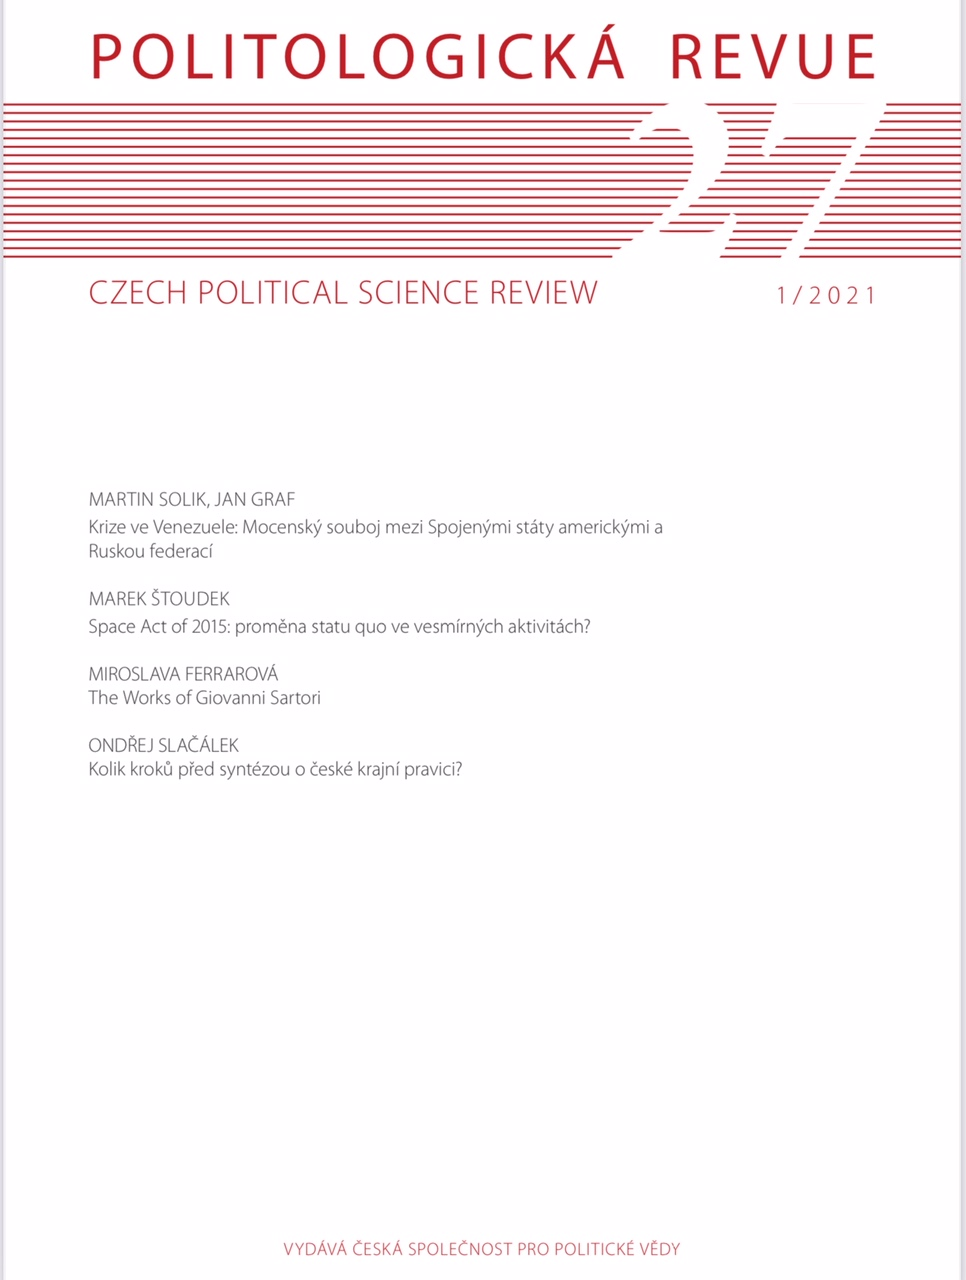 Czech Political Science Review Cover Image